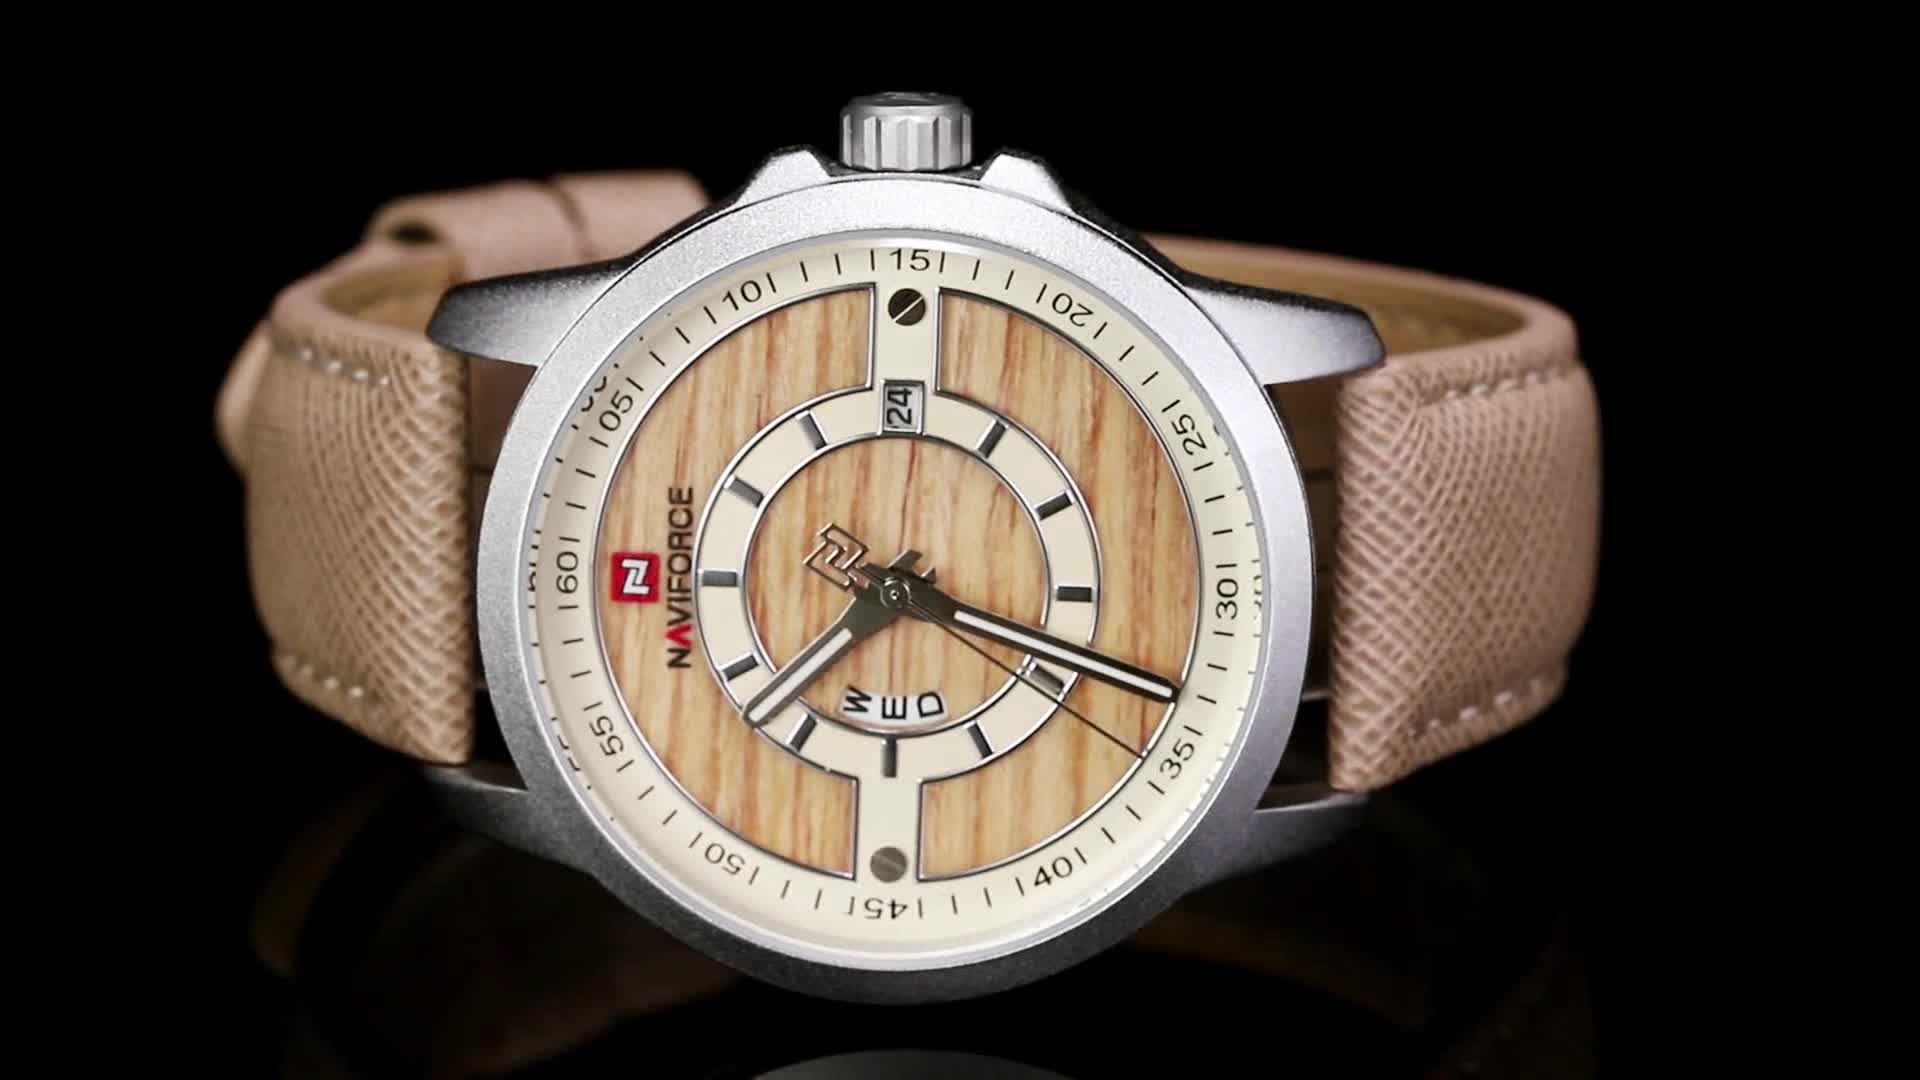 Naviforce 9151 man Waterproof  relojes hombre masculino wood grain  japan Movement  watch official store brand owner